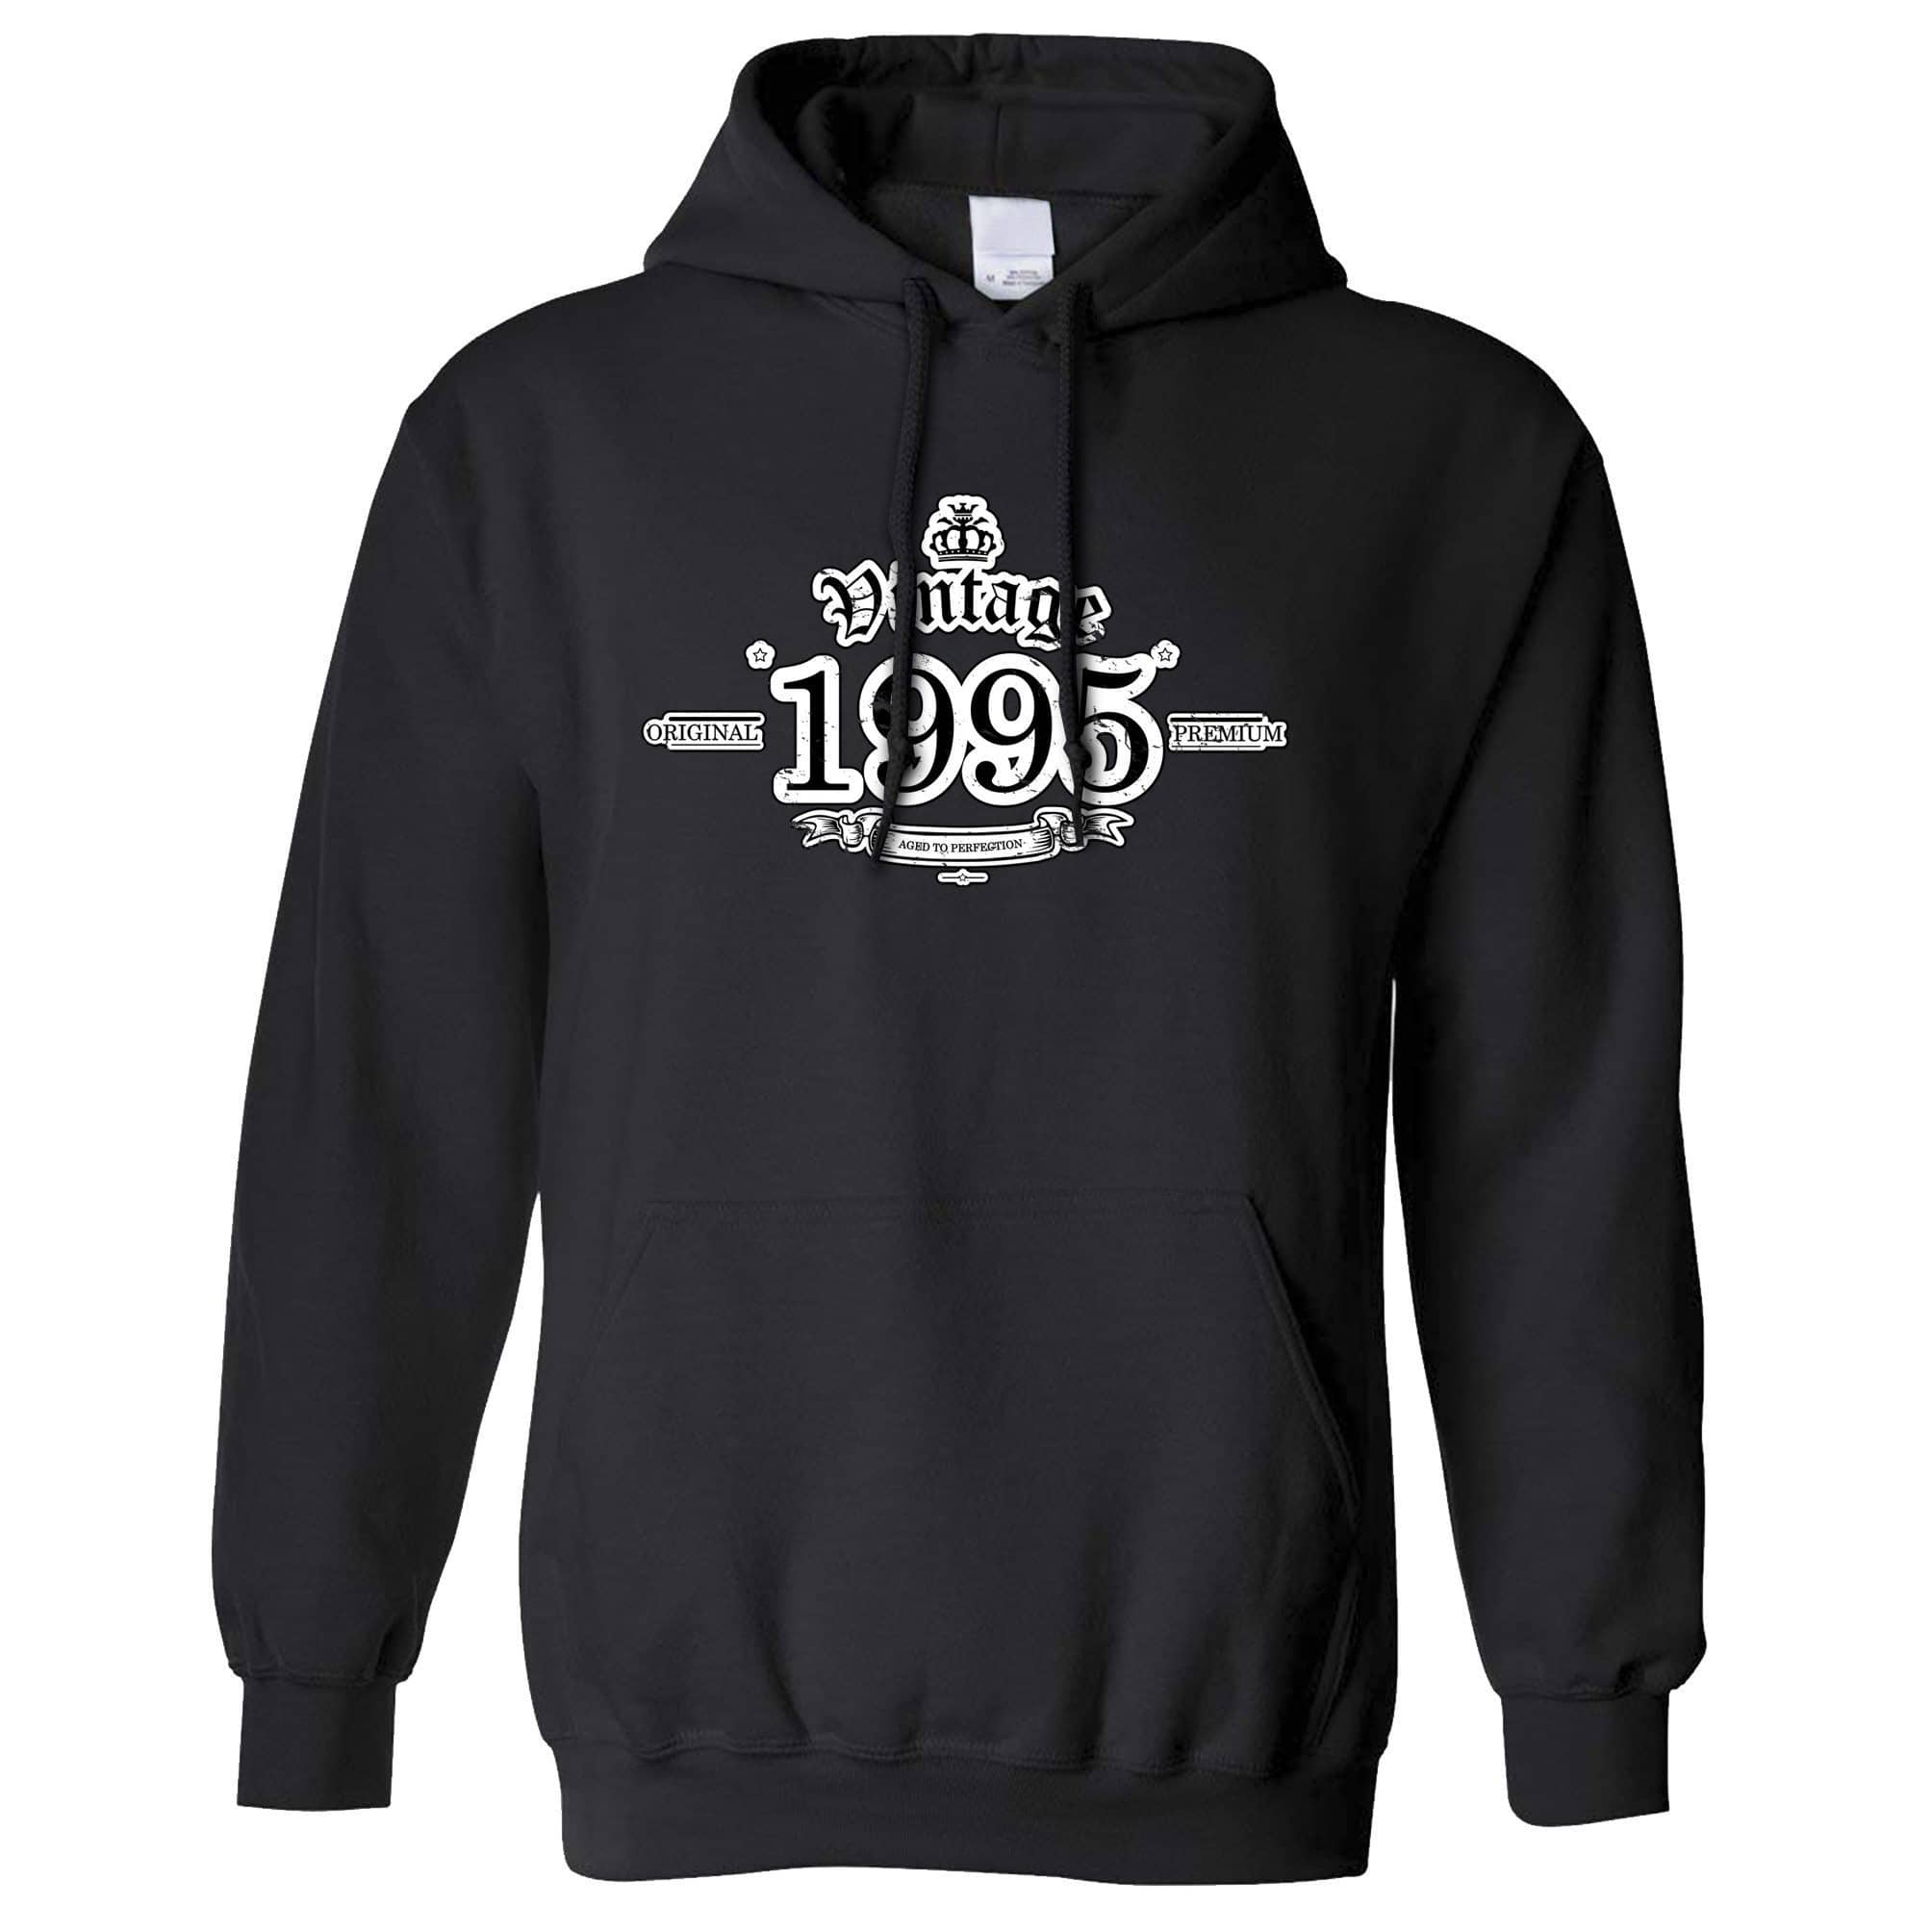 23rd Birthday Hoodie Vintage 1995 Aged To Perfection Hooded Jumper